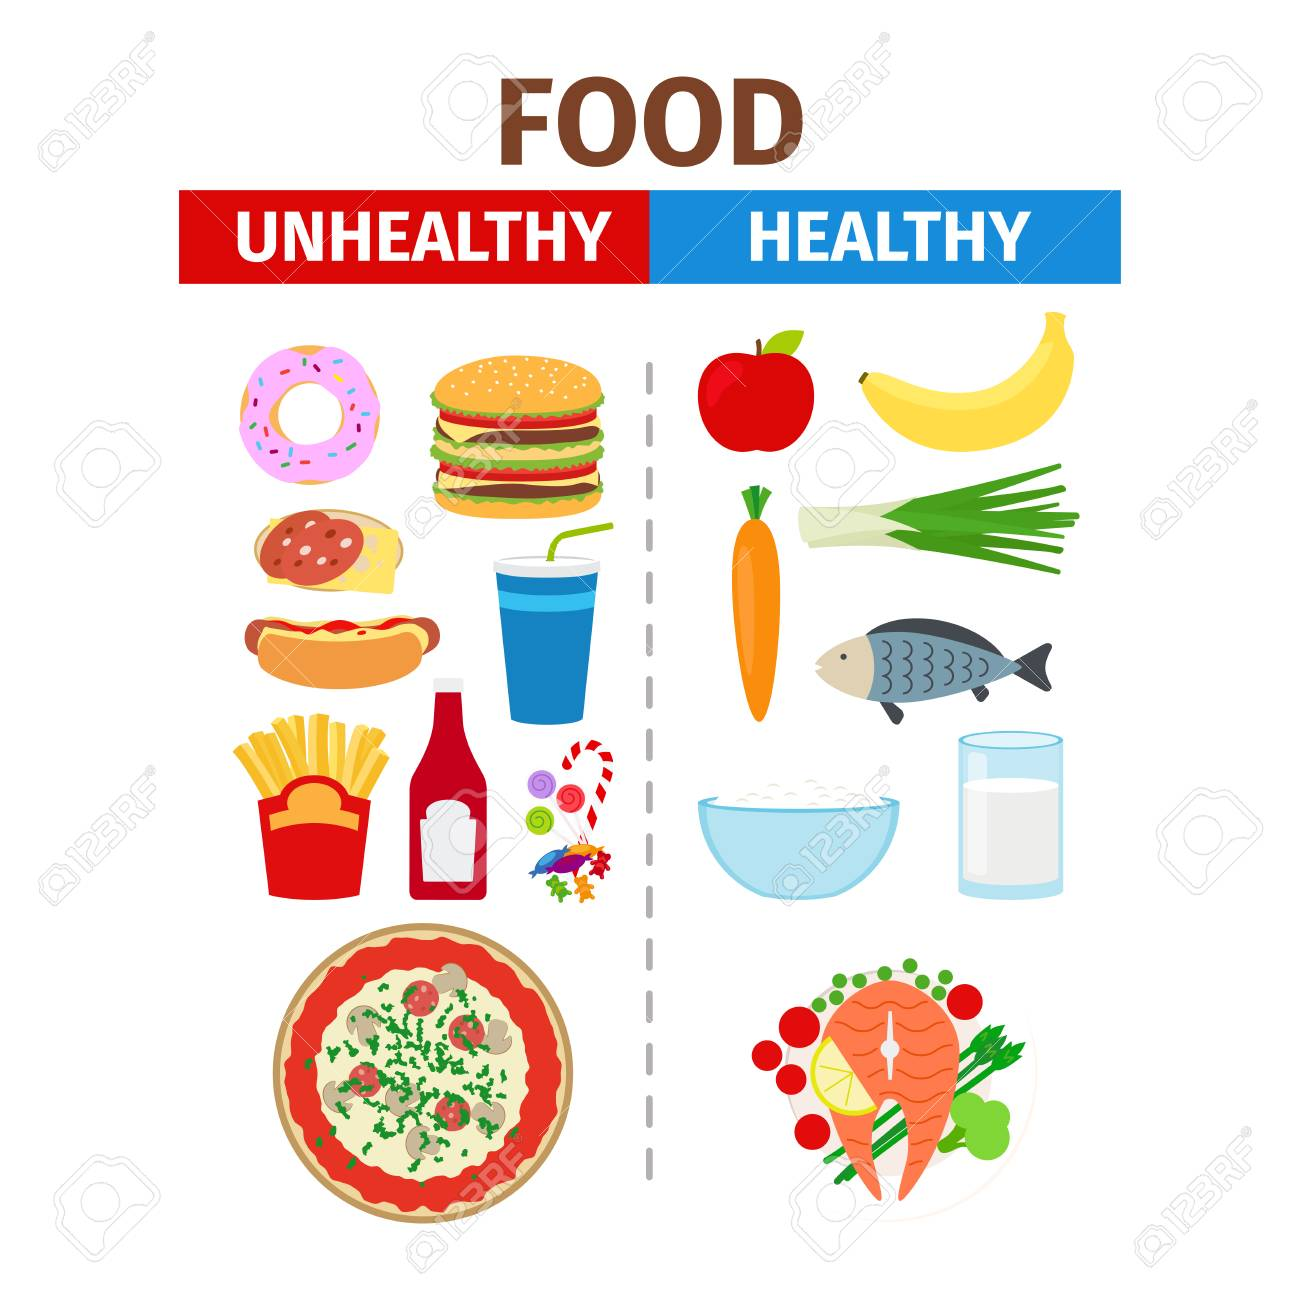 Healthy and unhealthy food vector poster with white background